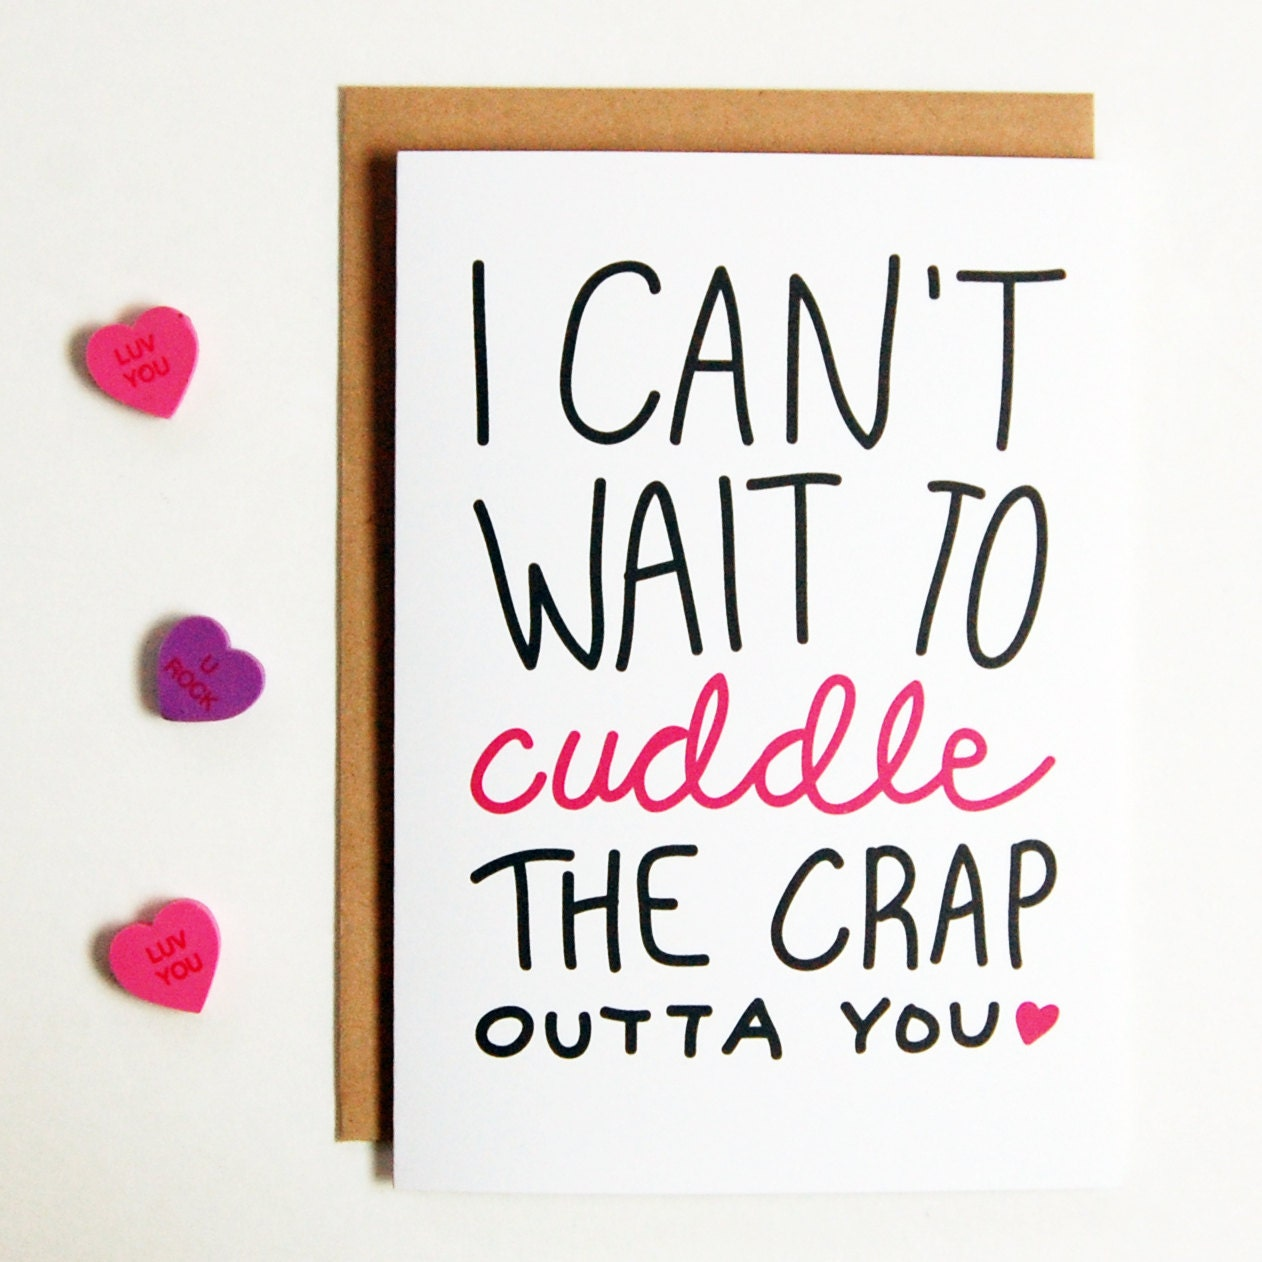 I Cant Wait To Cuddle Greeting Card long distance